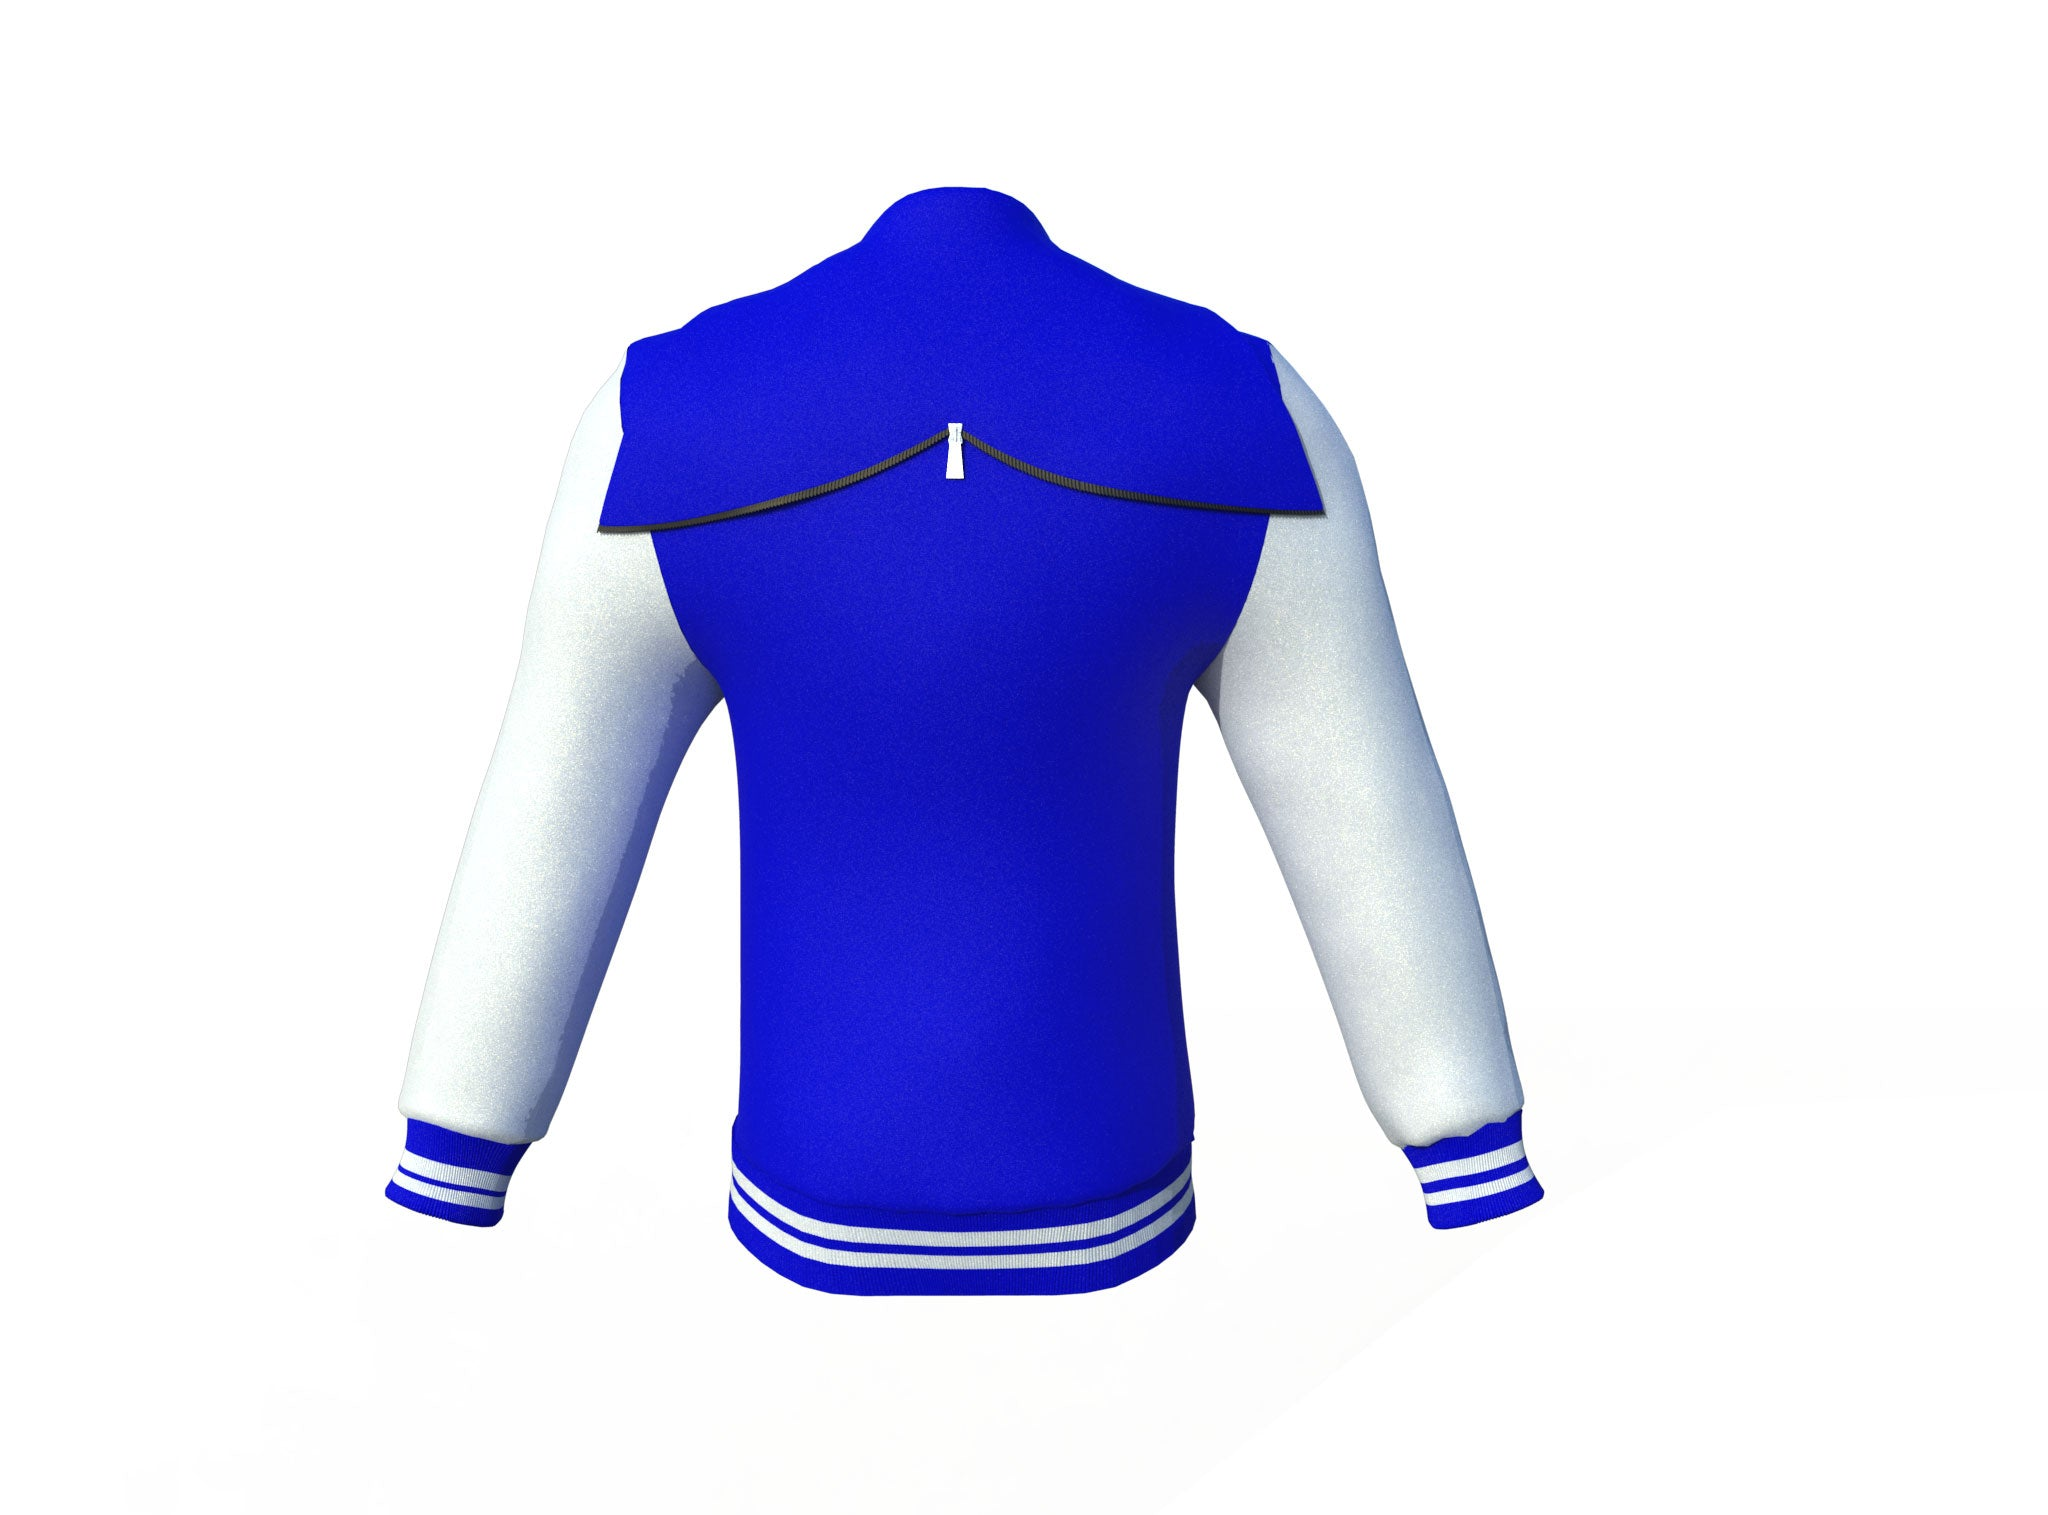 Blue Varsity Letterman Jacket with White Sleeves